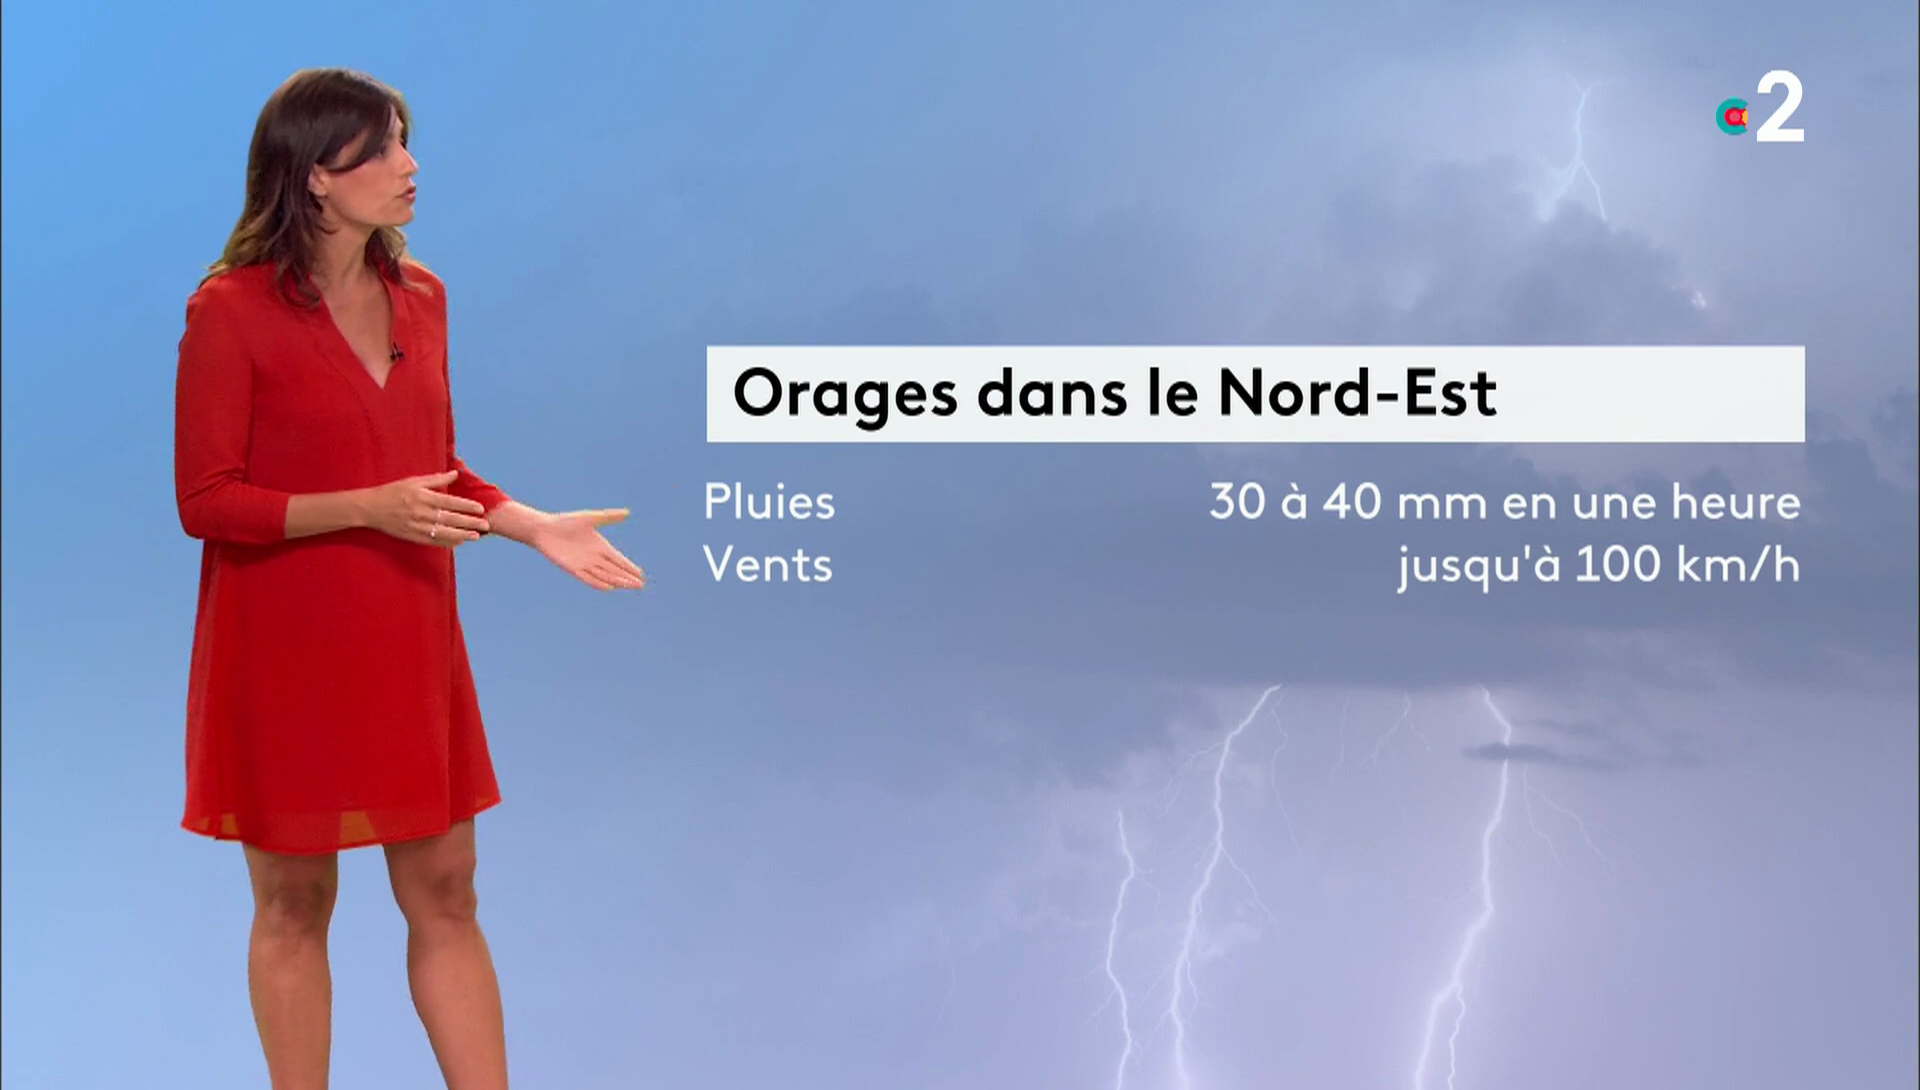 taniayoung03.2019_08_09_meteo13hFRANCE2